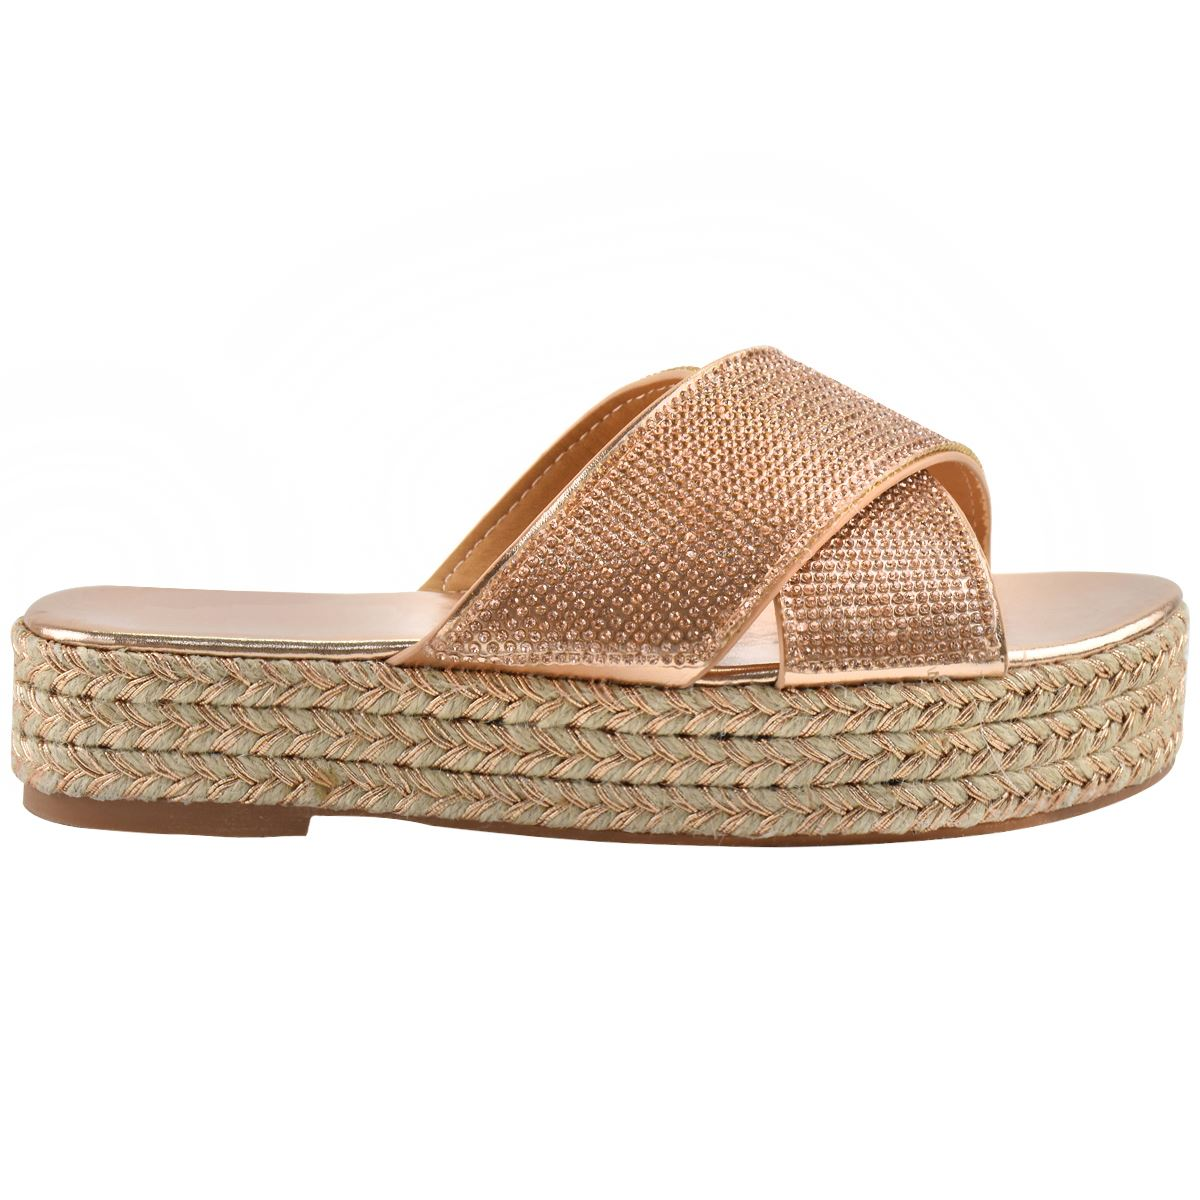 Womens-Diamante-Slip-On-Sandals-Flatforms-Sparkly-Platform-Summer-Size-UK thumbnail 9